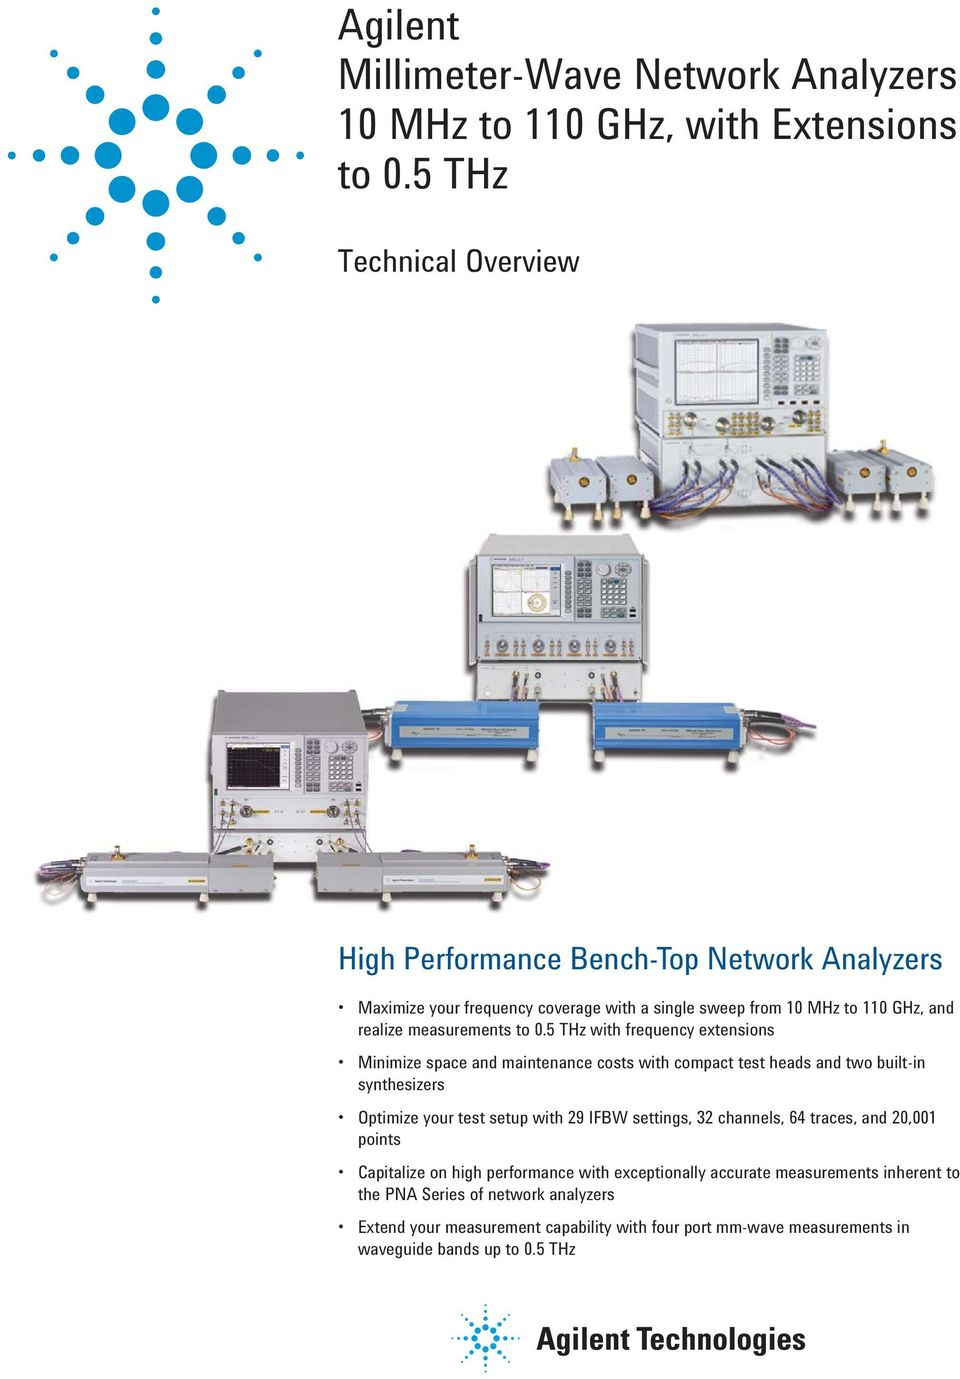 Agilent Millimeter Wave Network Analyzers 10 Mhz To 110 Ghz With Pna X Block Diagram 05 Thz Frequency Extensions Minimize Space And Maintenance Costs Compact Test Heads